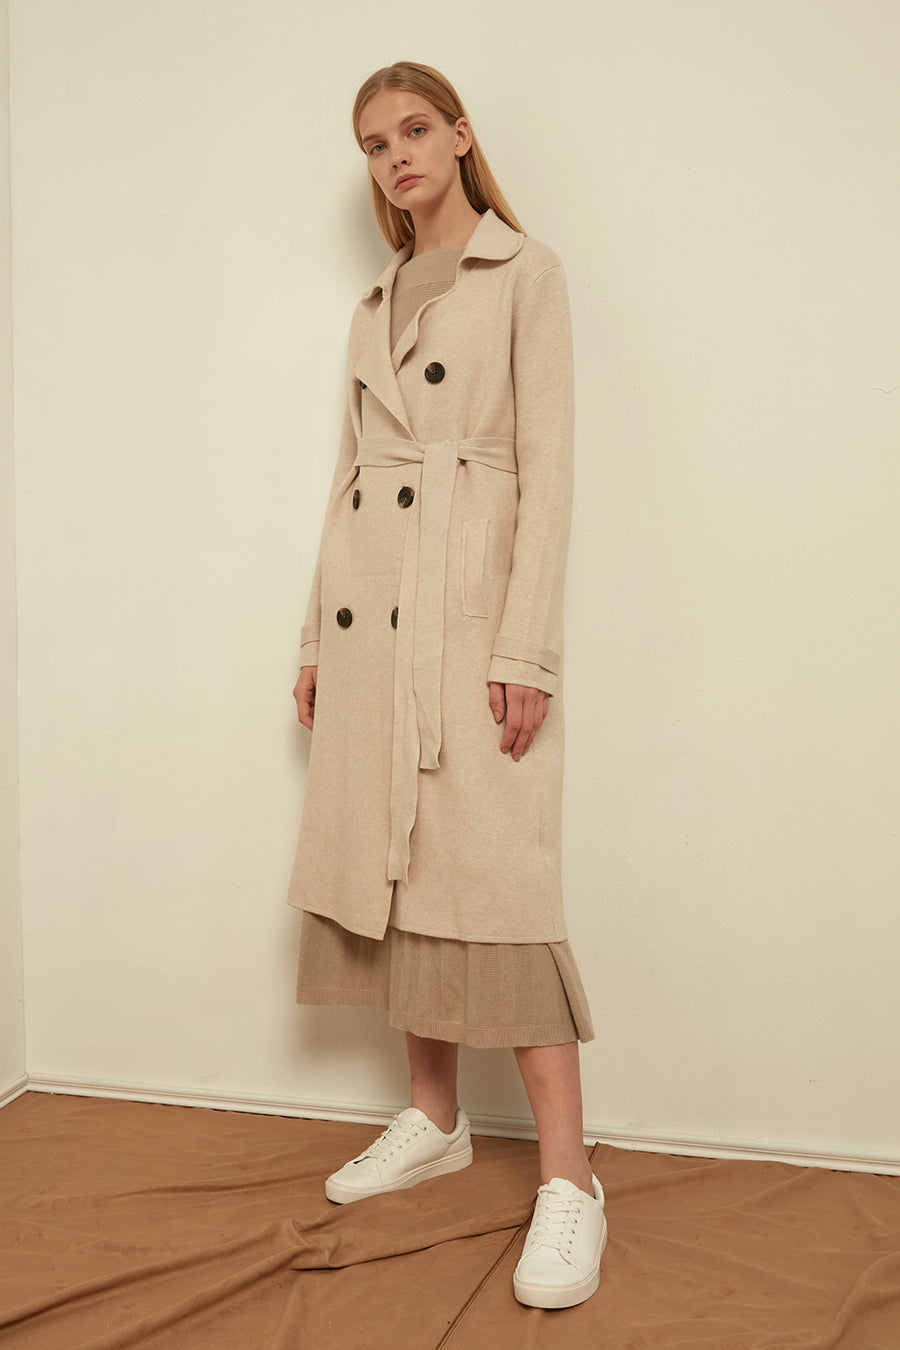 Knitted cashmere-blend trench coat - Zelle Studio